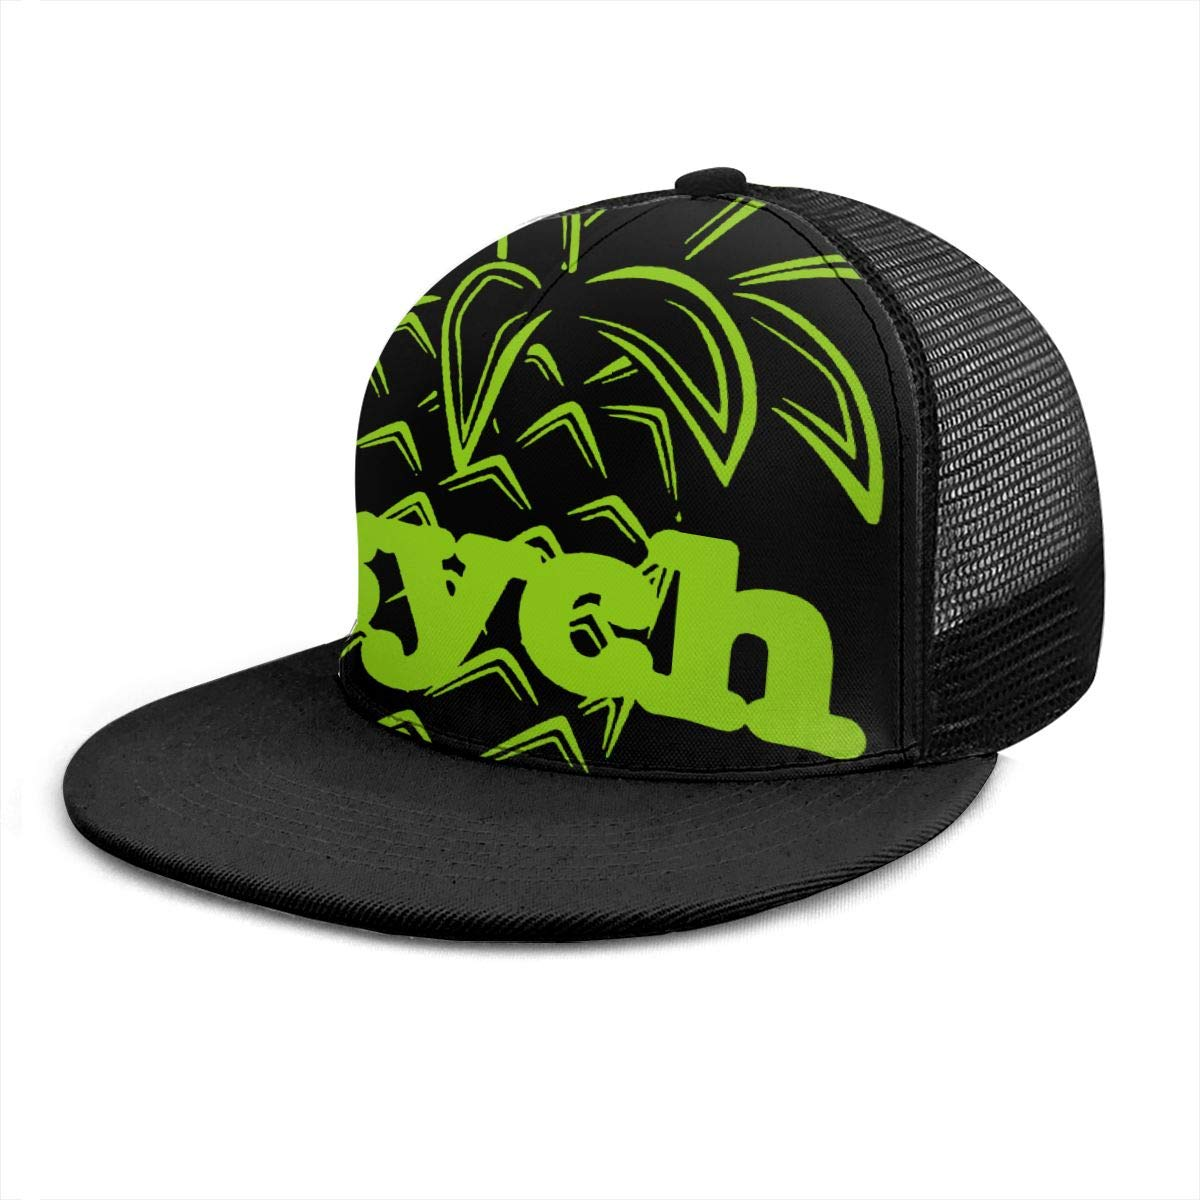 Mens and Womens 100/% Polyester Green Outline of Pineapple Mesh Cap Stretch Trucker Baseball Cap for Unisex